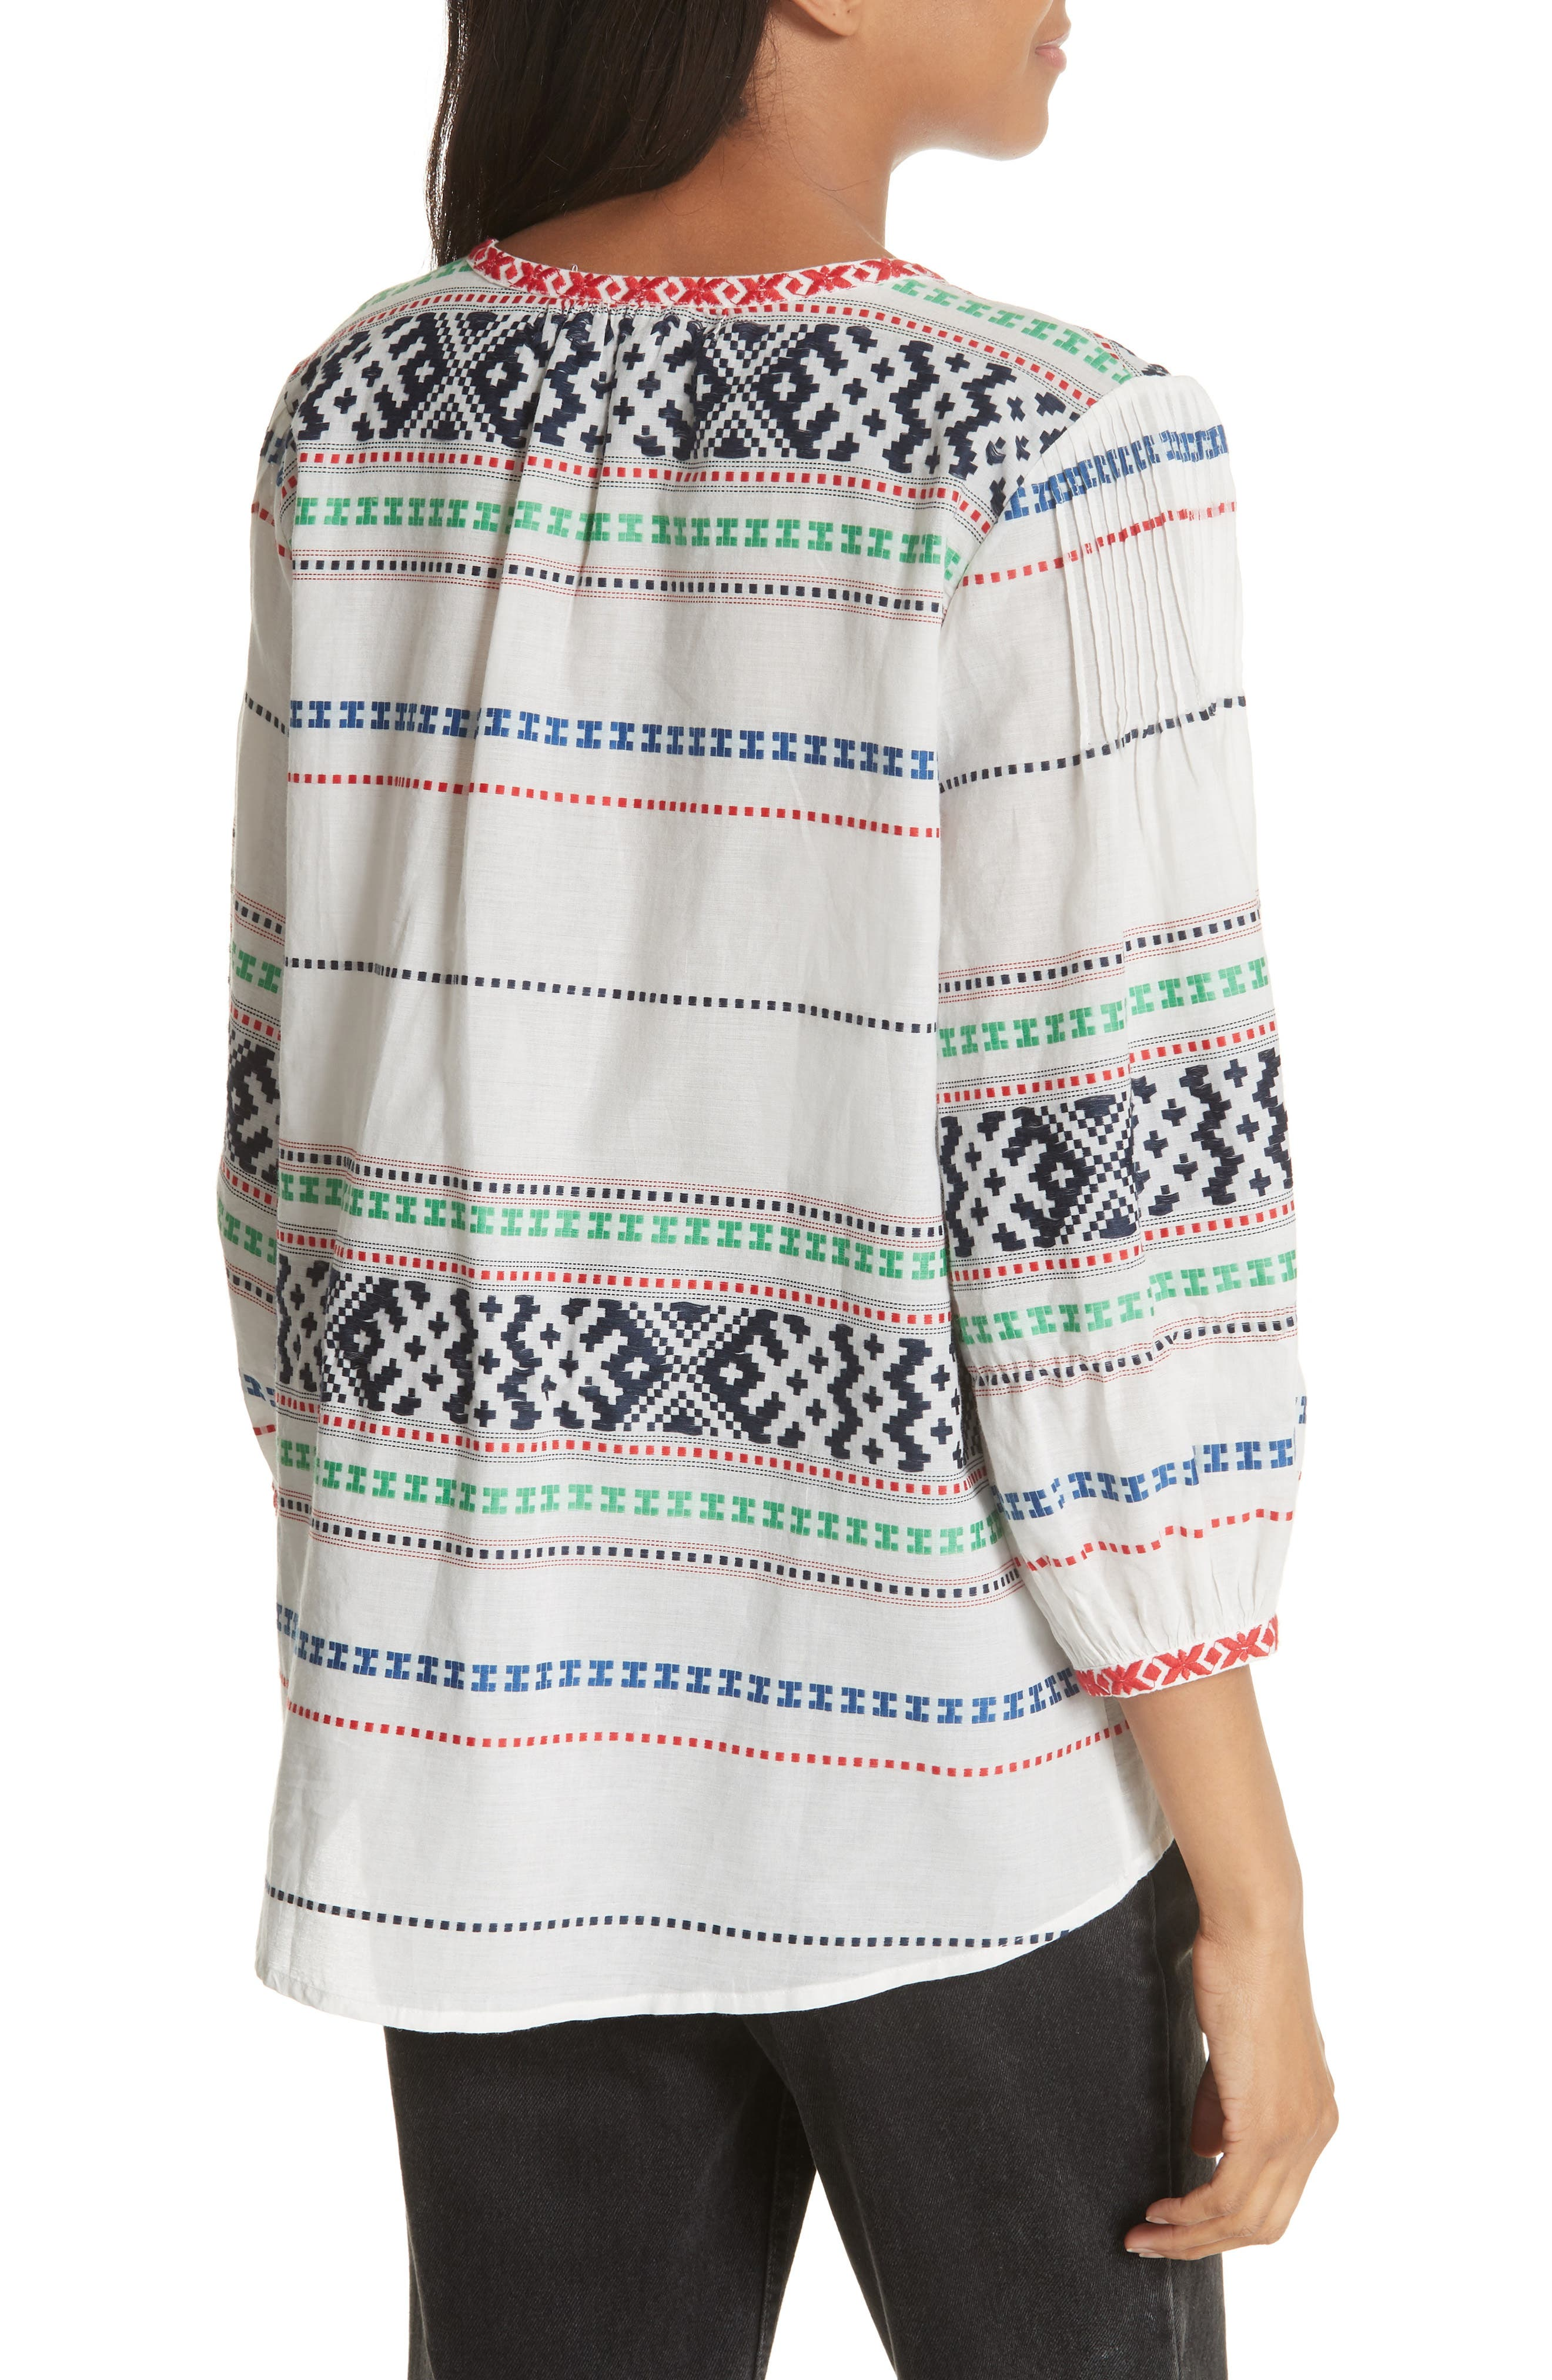 Jenollina Embroidered Top,                             Alternate thumbnail 2, color,                             114